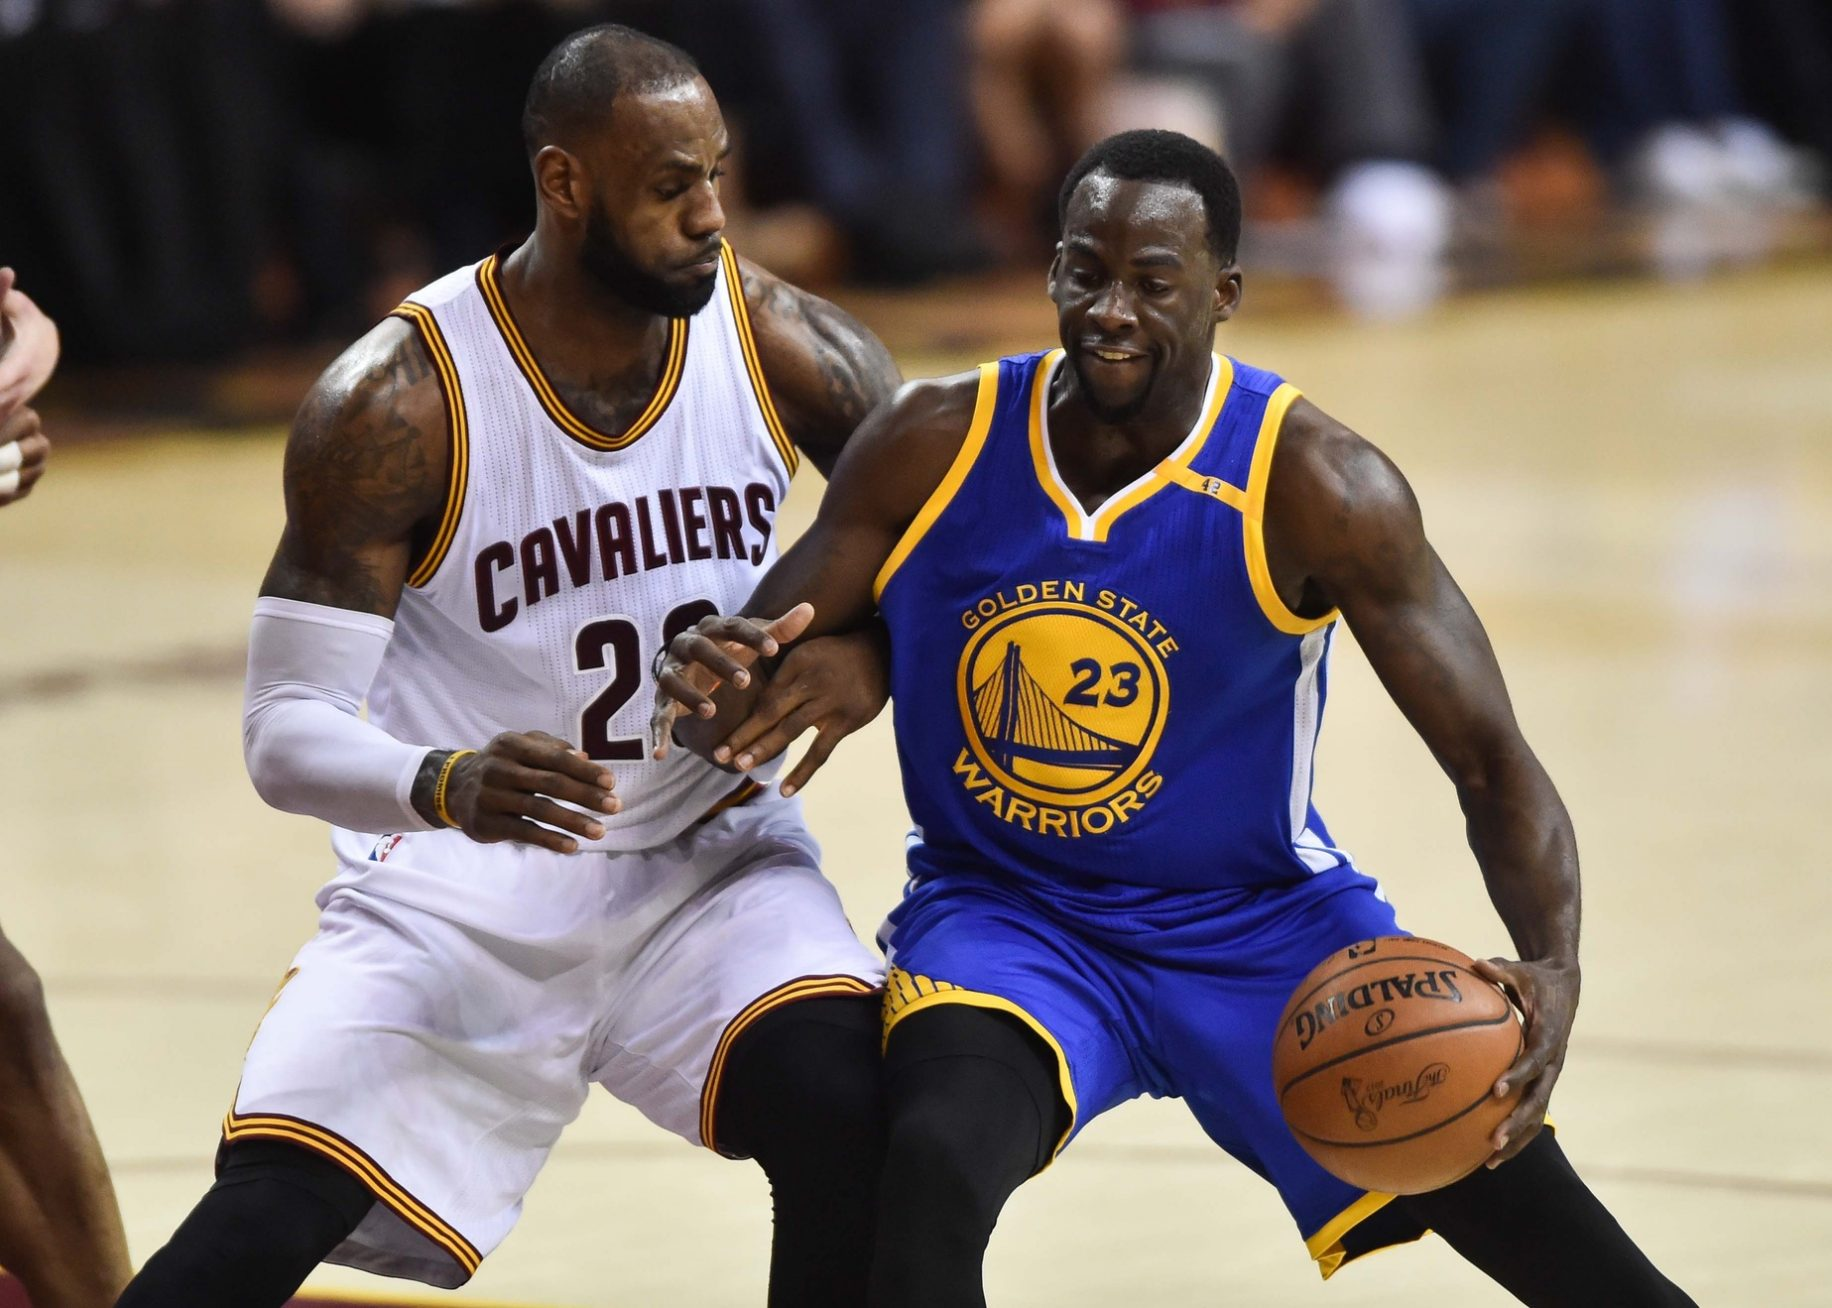 Draymond Green Gets Last Laugh in Petty Battle With LeBron James